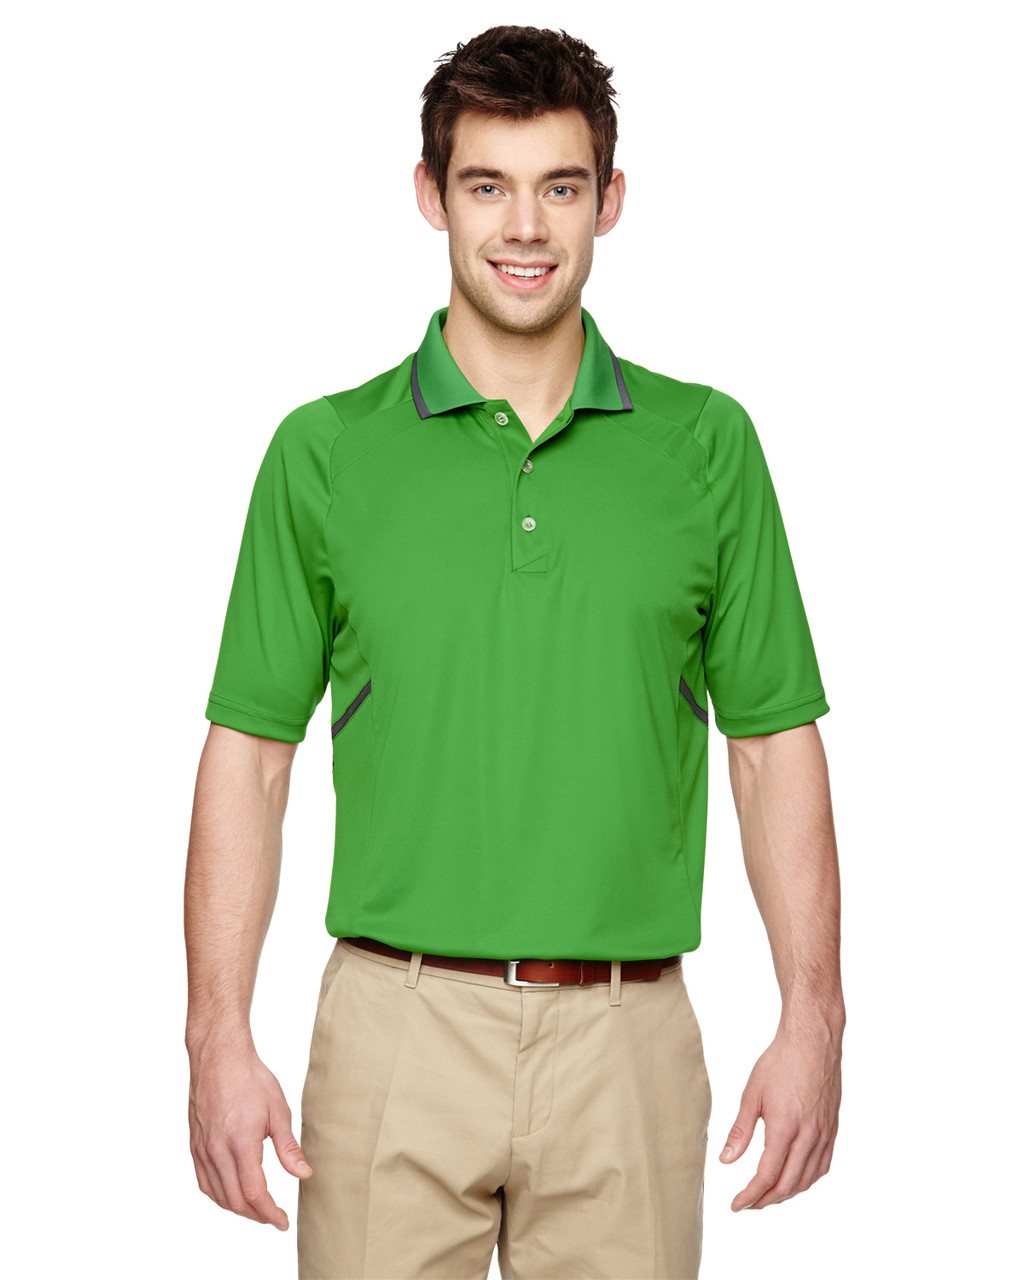 Valley Green - Extreme Eperformance Propel Interlock Polo Shirt with Contrast Tape